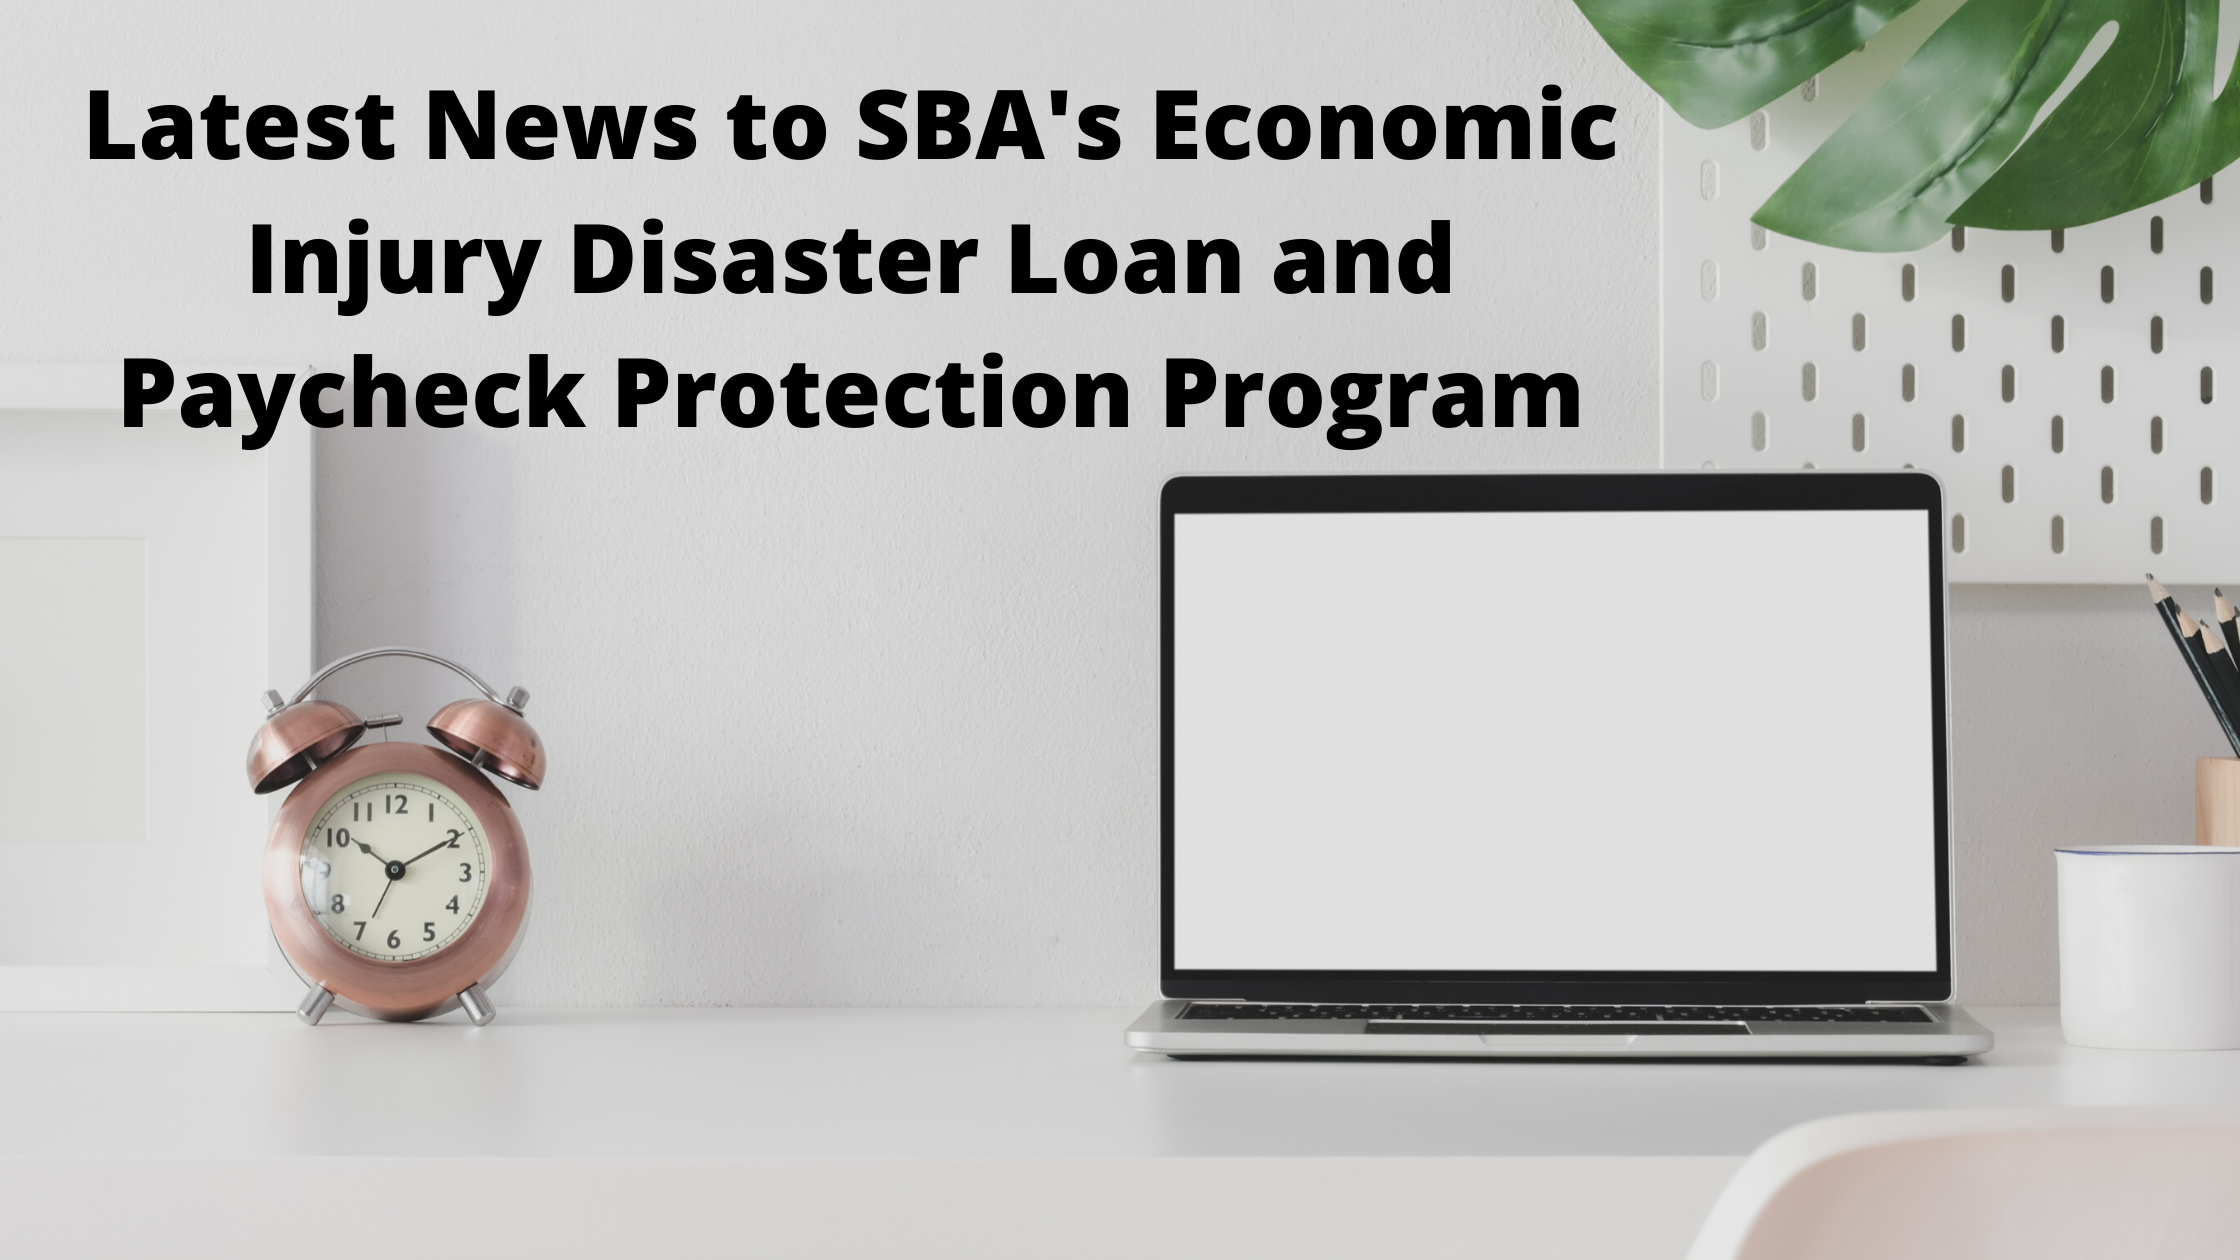 SBA Economic Injury Disaster Loan